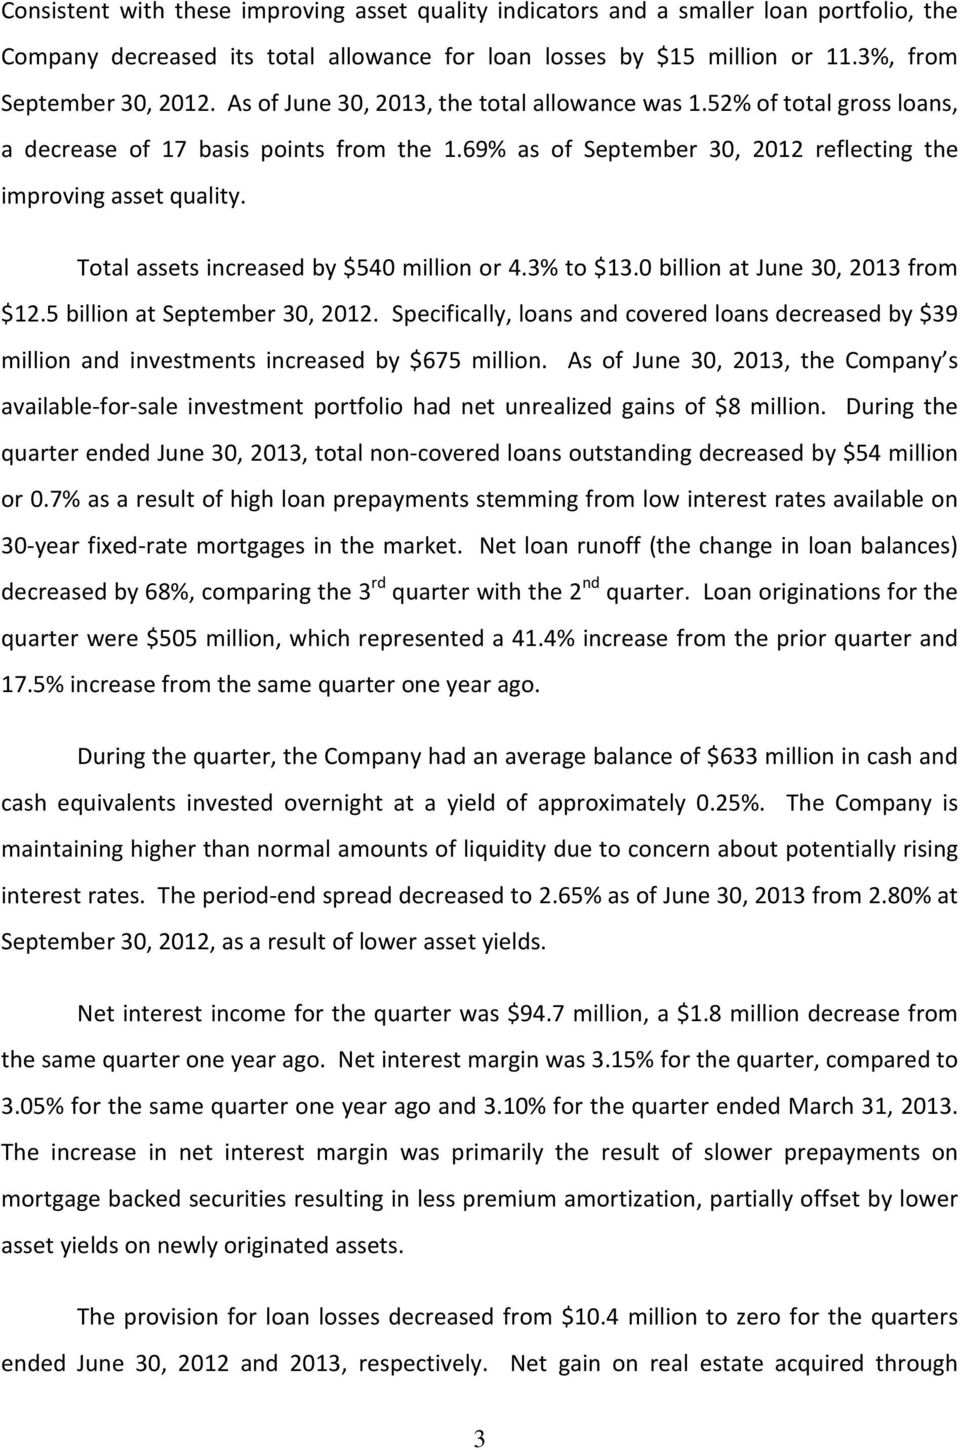 Total assets increased by $540 million or 4.3% to $13.0 billion at June 30, 2013 from $12.5 billion at September 30, 2012.